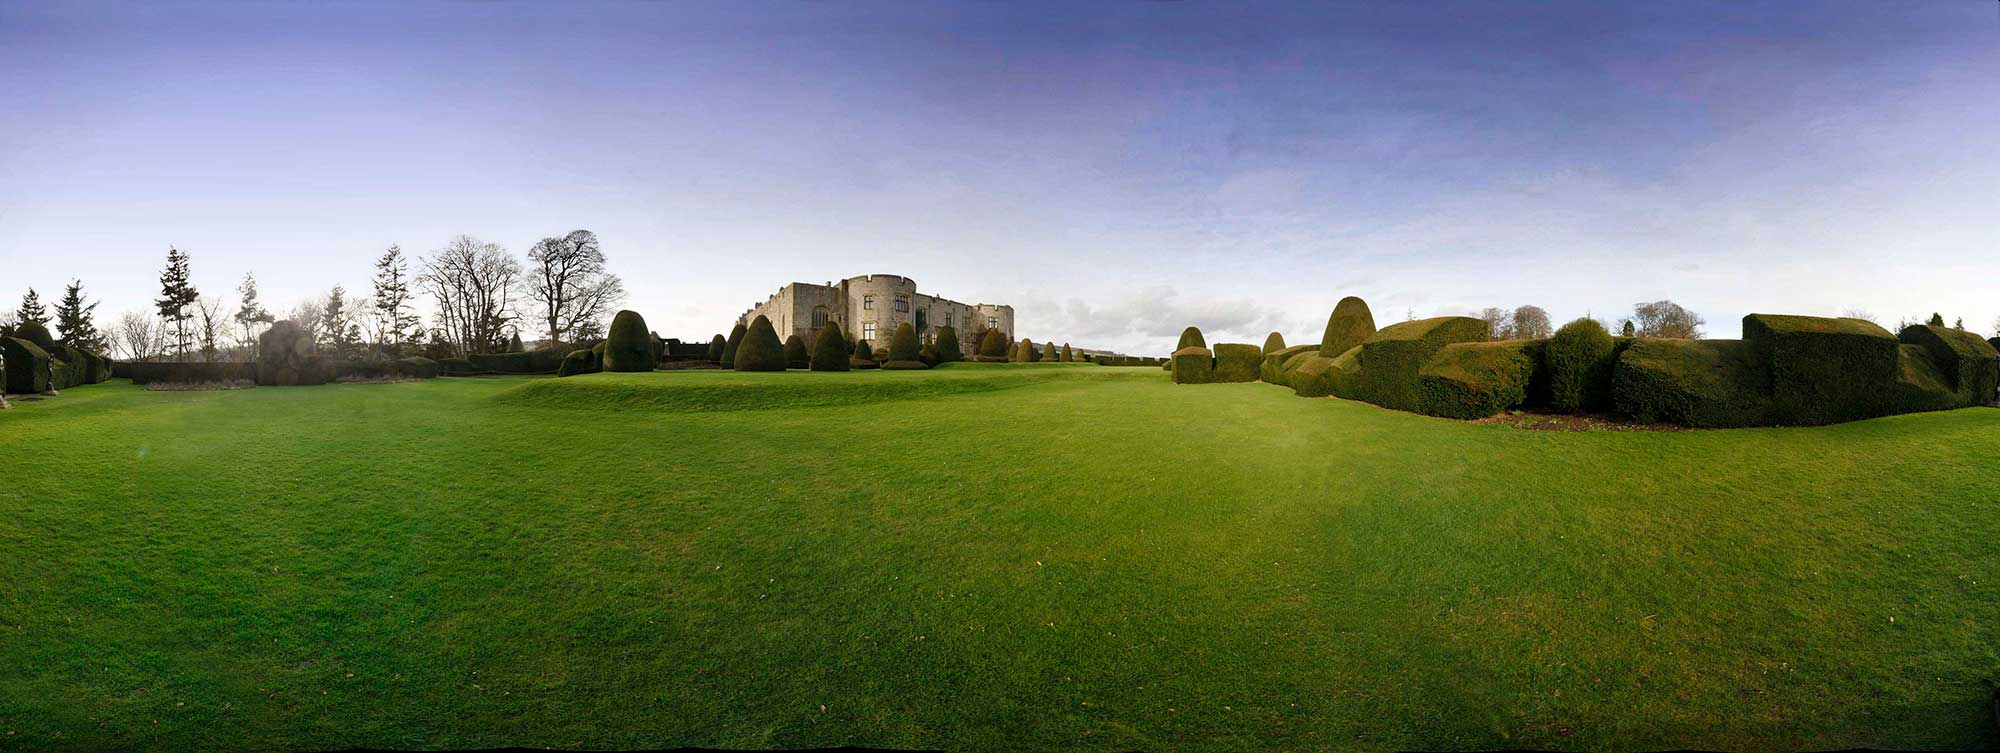 *chirk castle and grounds